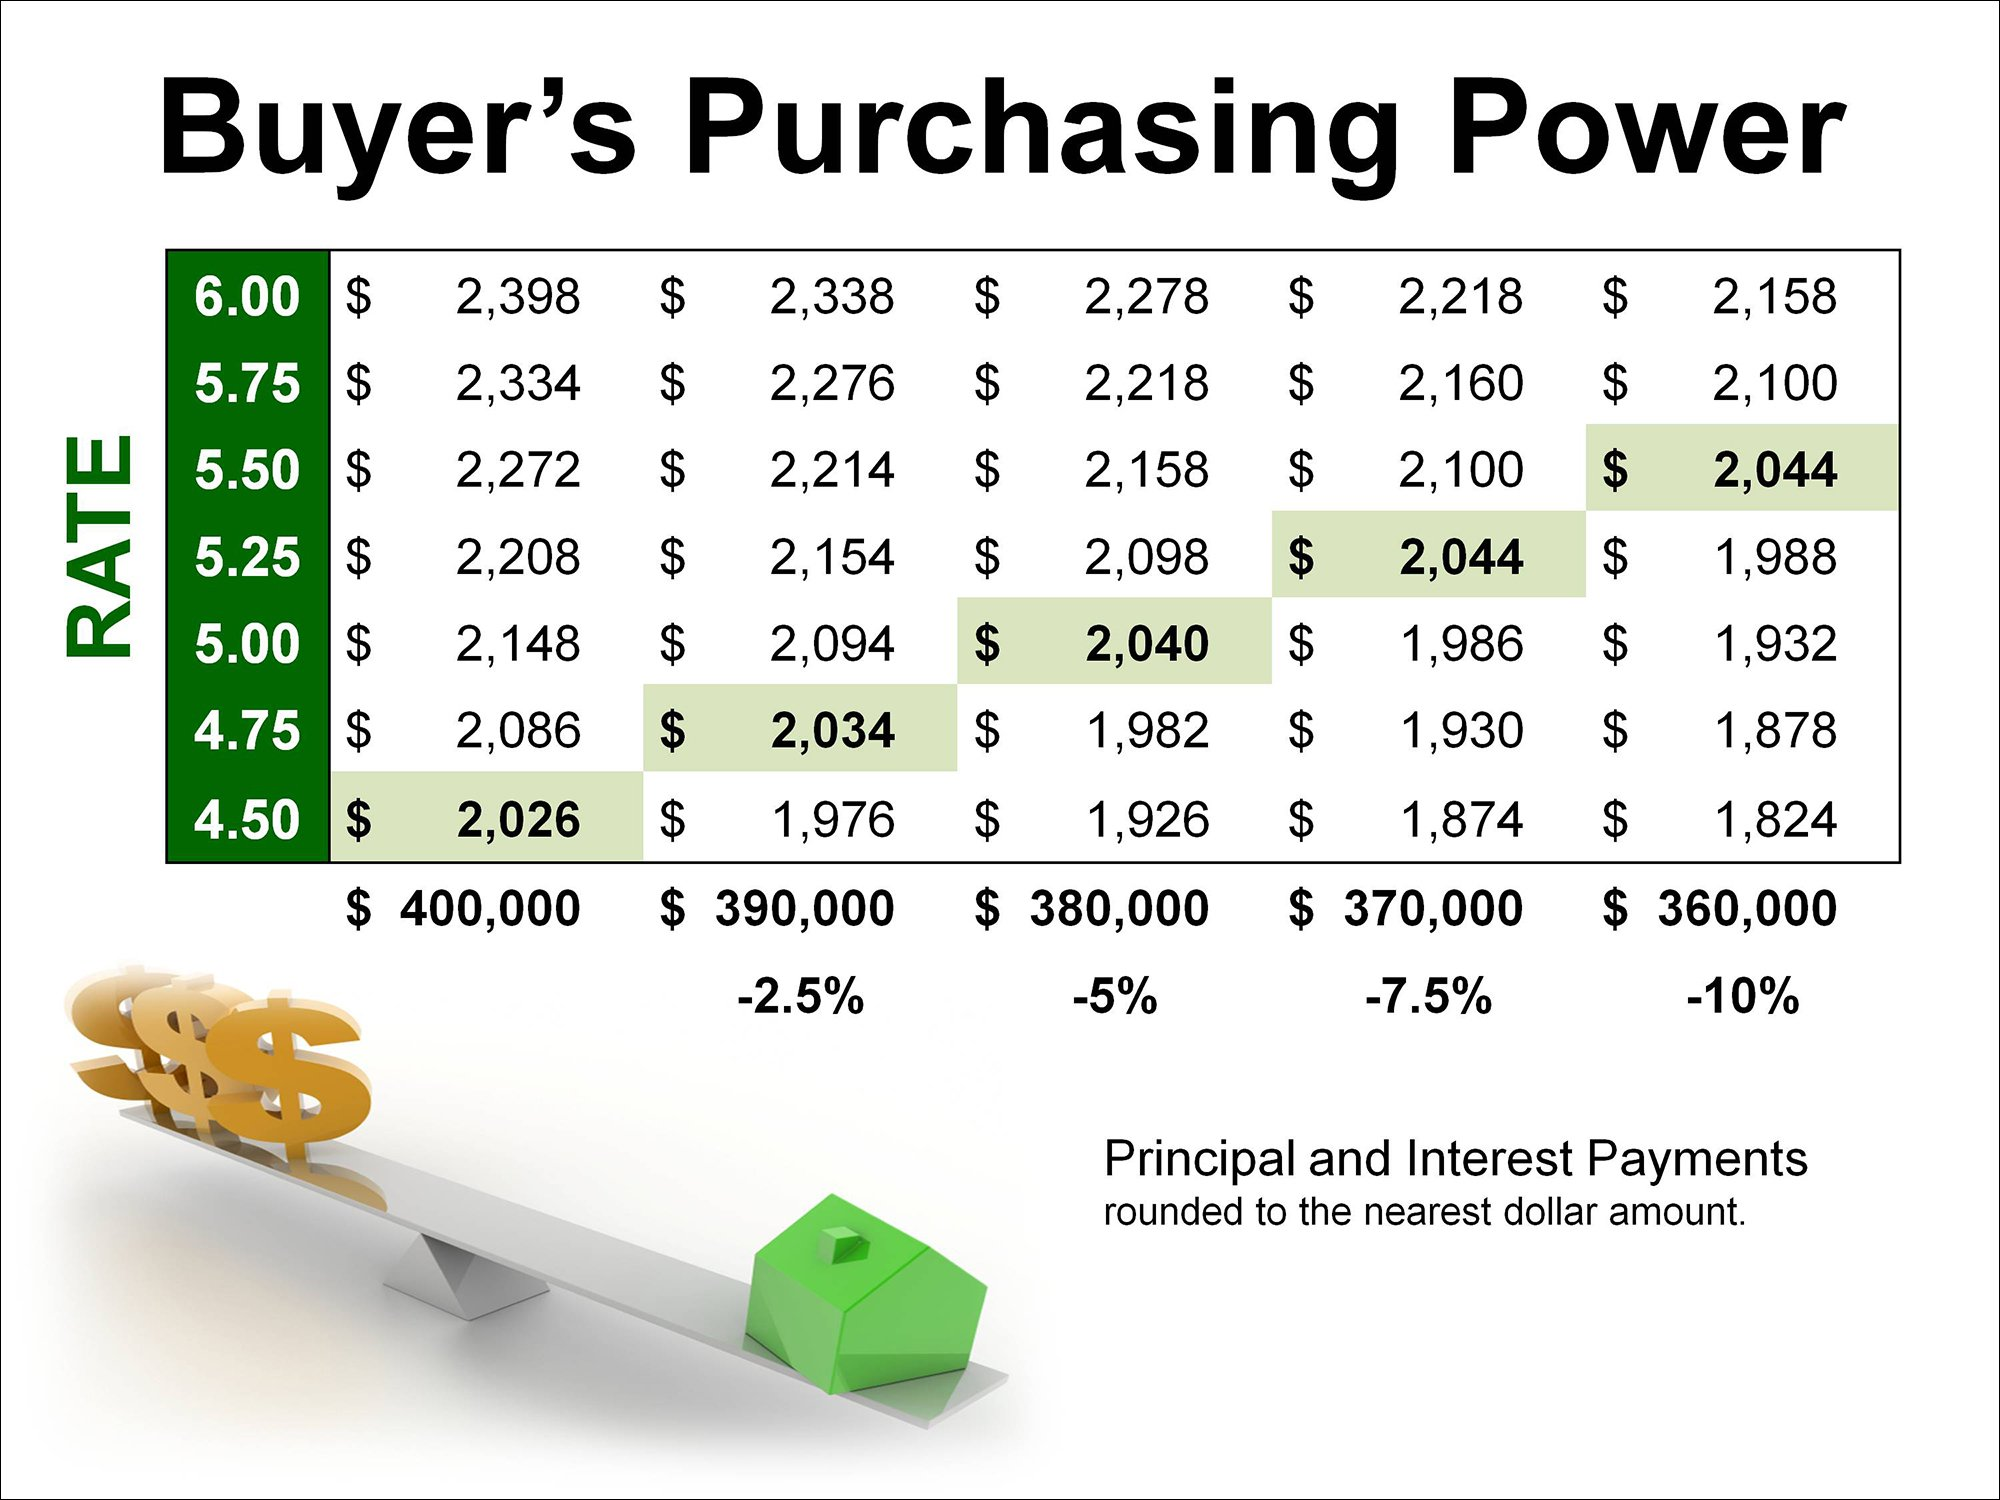 Buyer's Purchasing Power | Keeping Current Matters